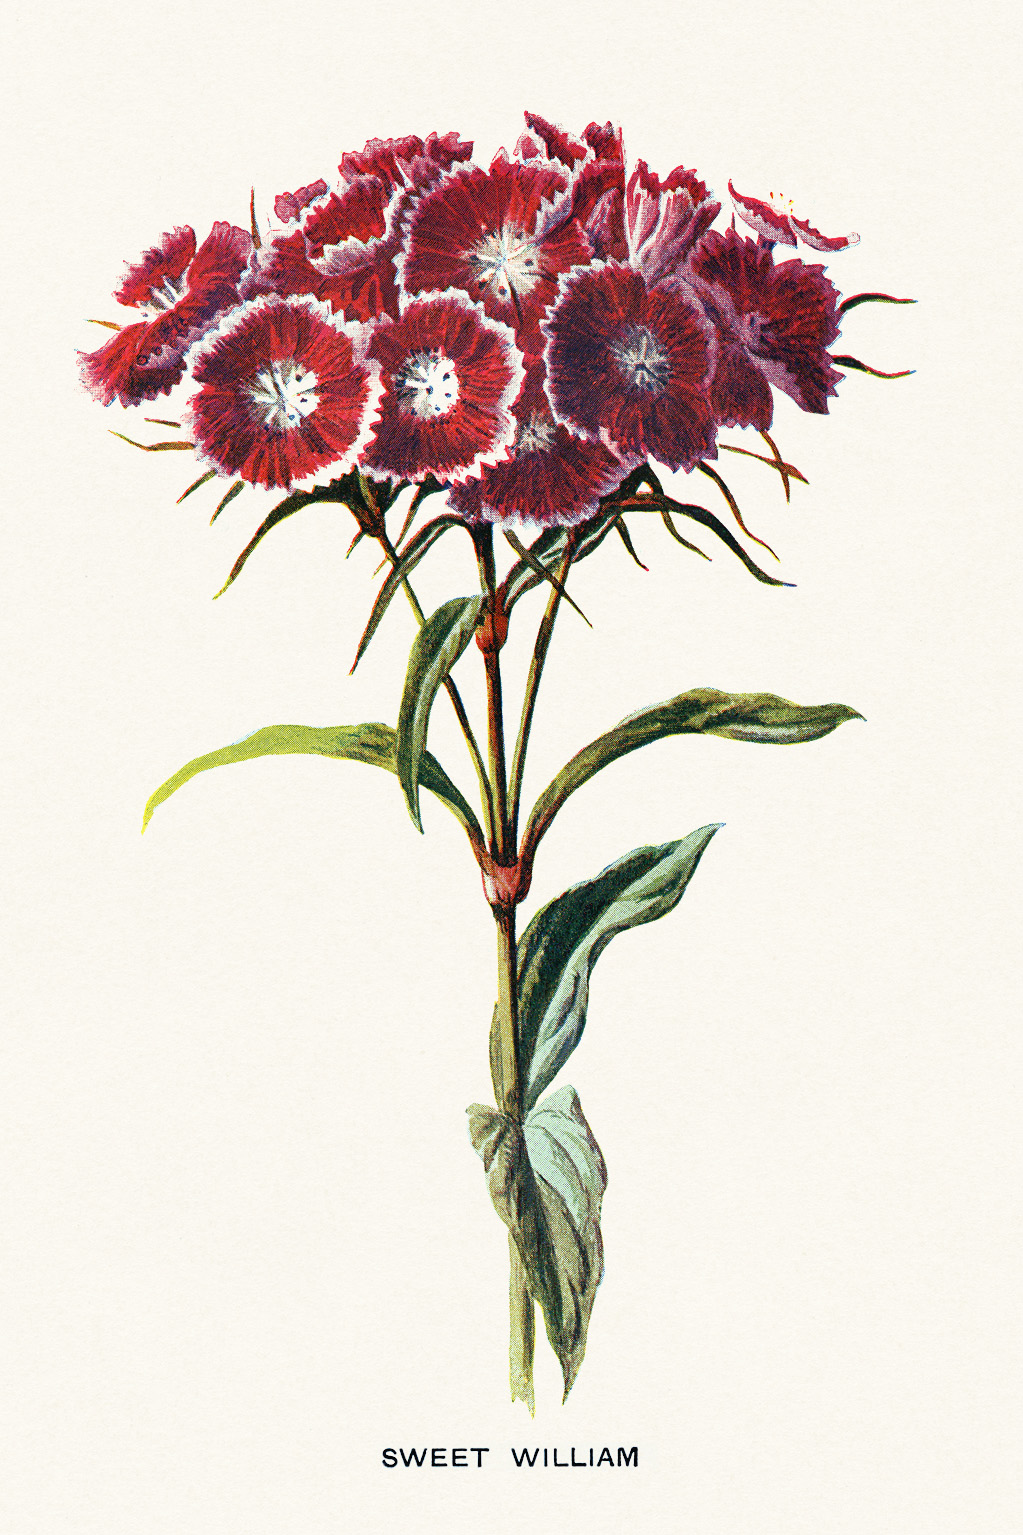 Free printable vintage floral illustration Sweet William